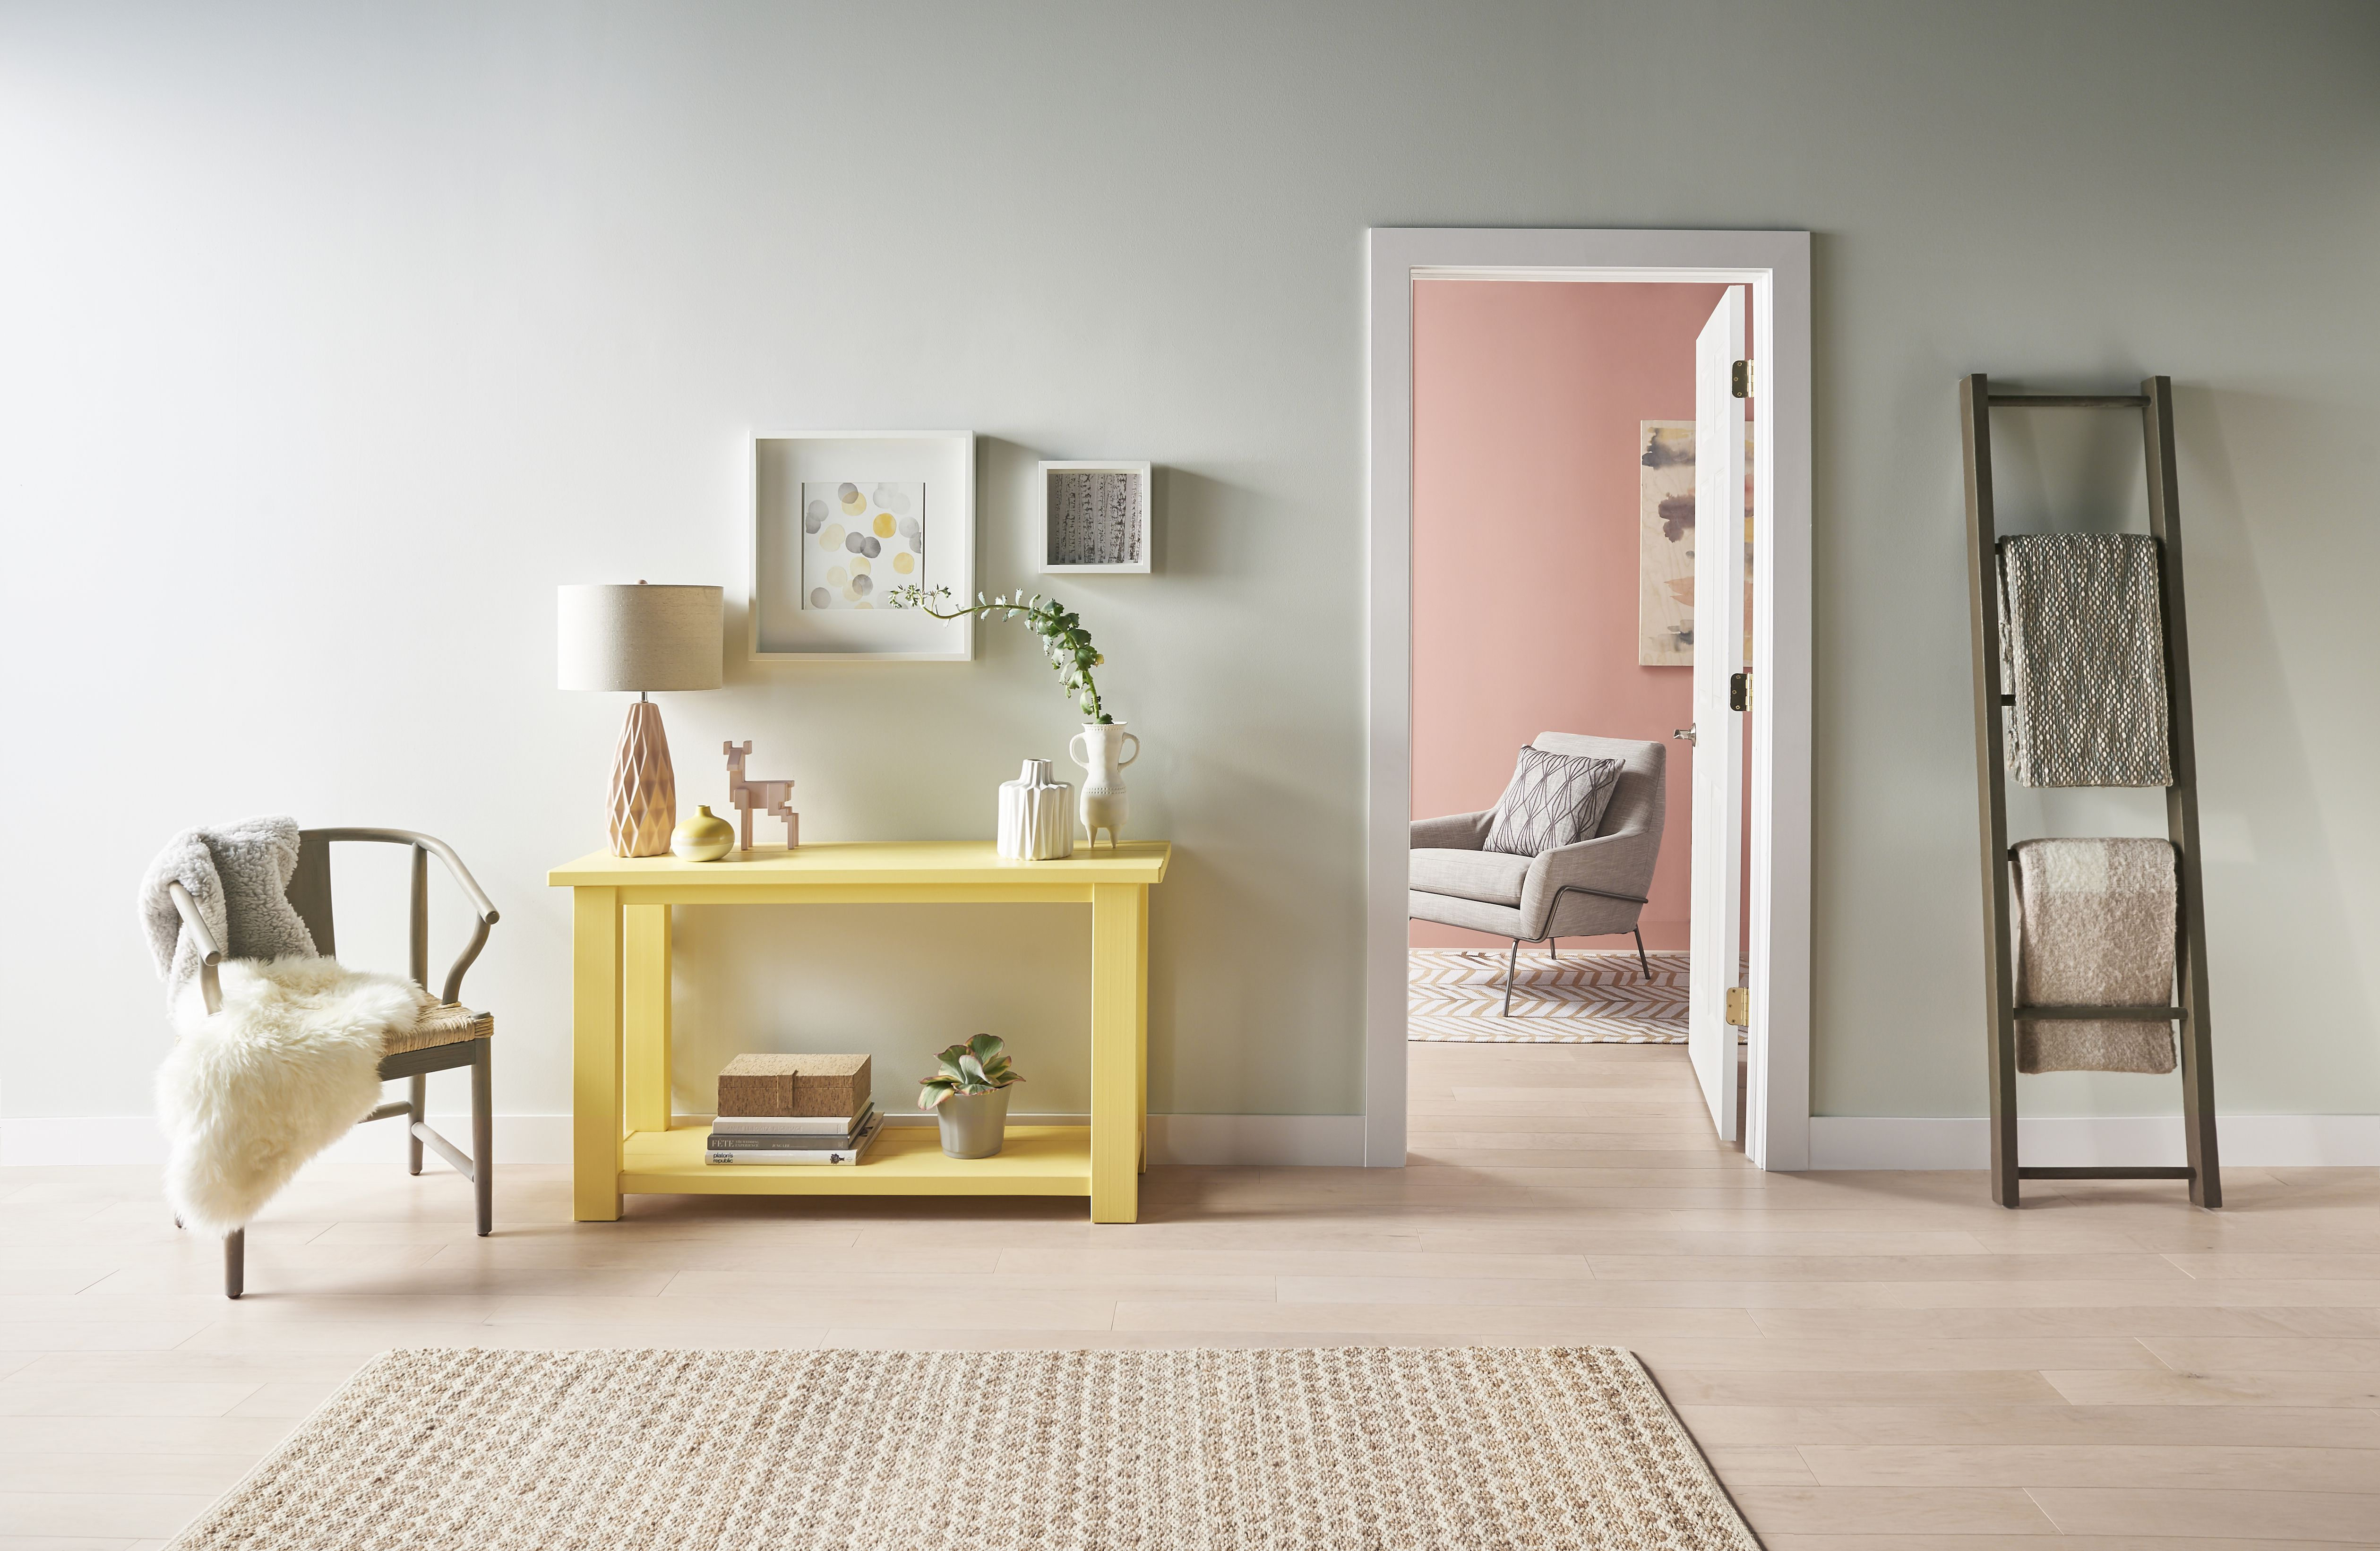 ncaa address popular year colors behr wall palette design bright paint for scores indonesia picture interior living concept and ideas schemes with decorating fire nfl ferry pretty painting hgtv ivory beautiful accent room francis emerald pope now bedroom color green new